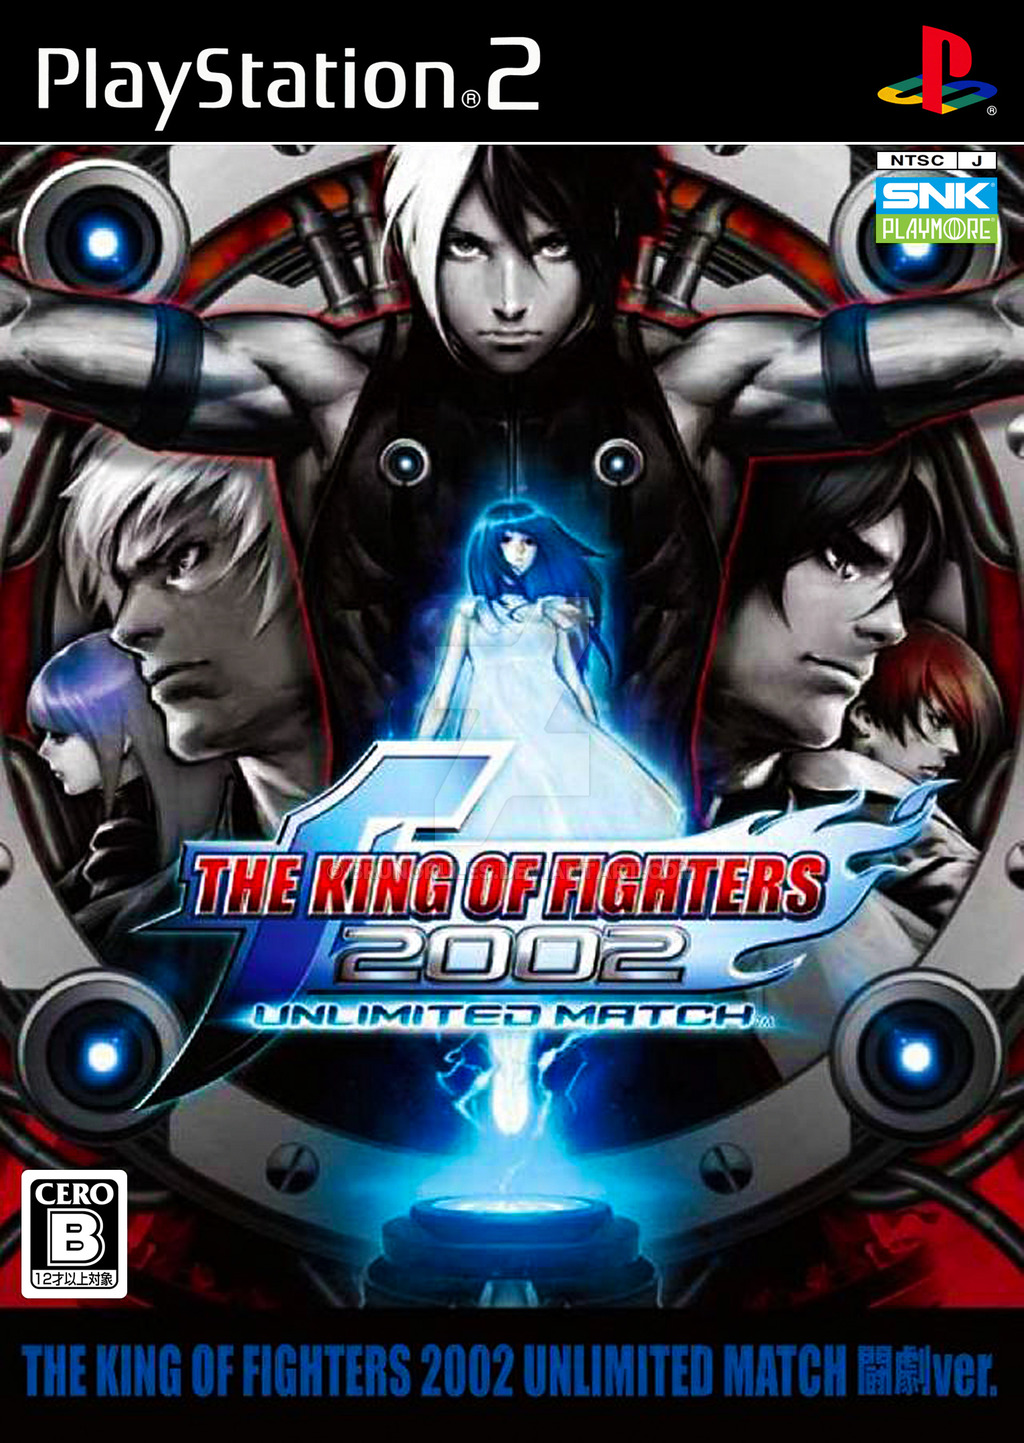 the king of fighters 2002  unlimited match details